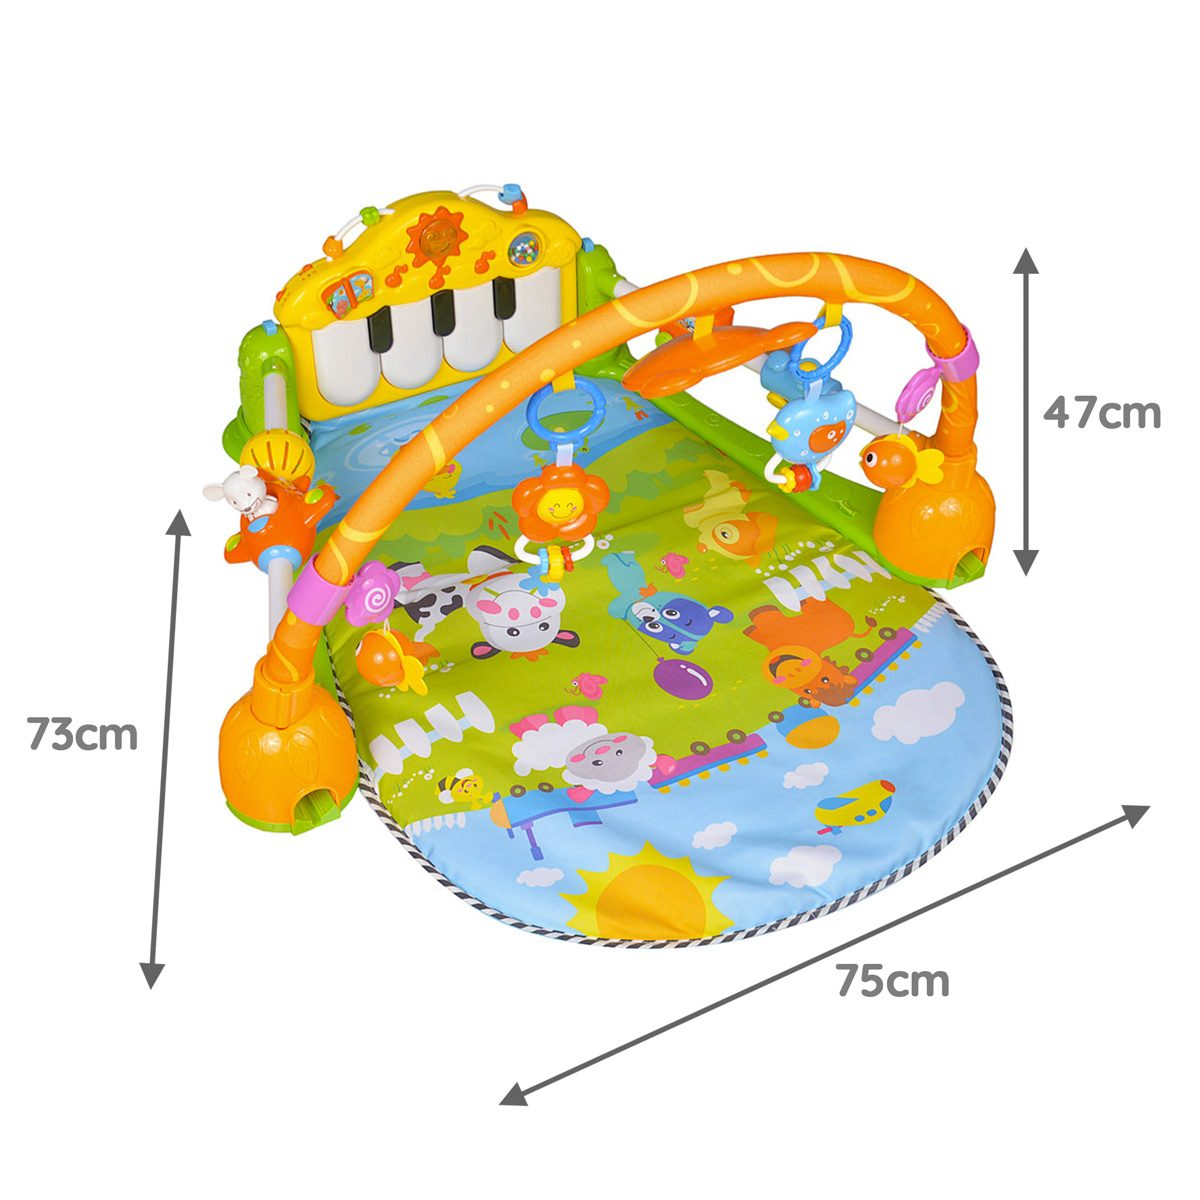 Mini Me & Friends Multicolour activity mat dimensions